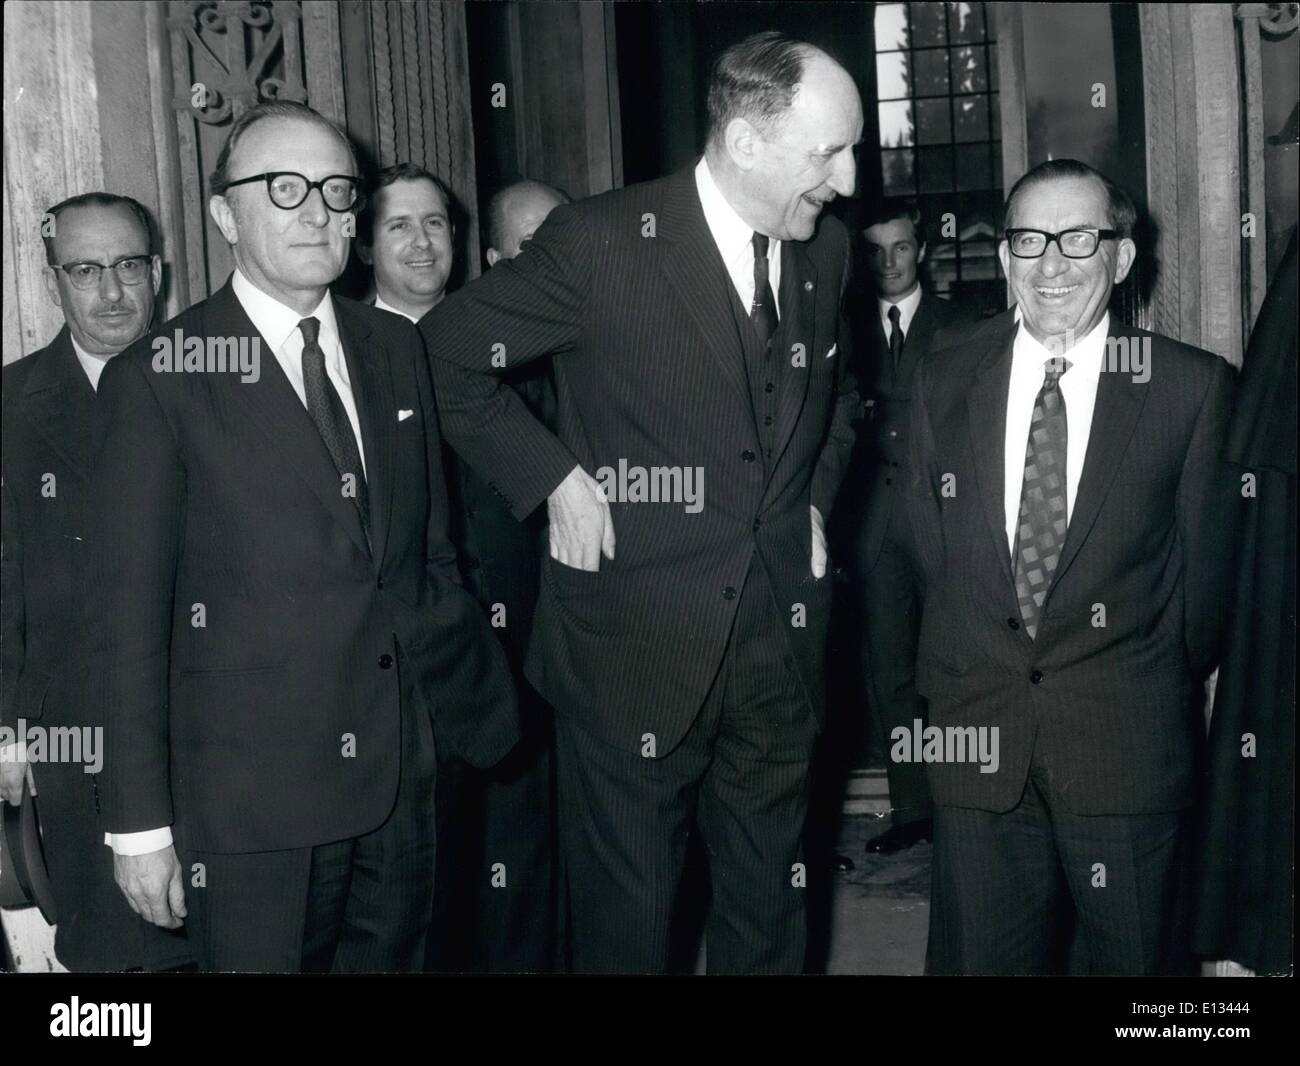 Feb. 26, 2012 - The talks to solve the crisis of Malta have followed today in Roma in the Villa Madama. Photo shows from left Britain's defense secretary Lord Carrington, Nato Secretary General Jospeh Luns and Maltese Premier Dom Mintoff. - Stock Image